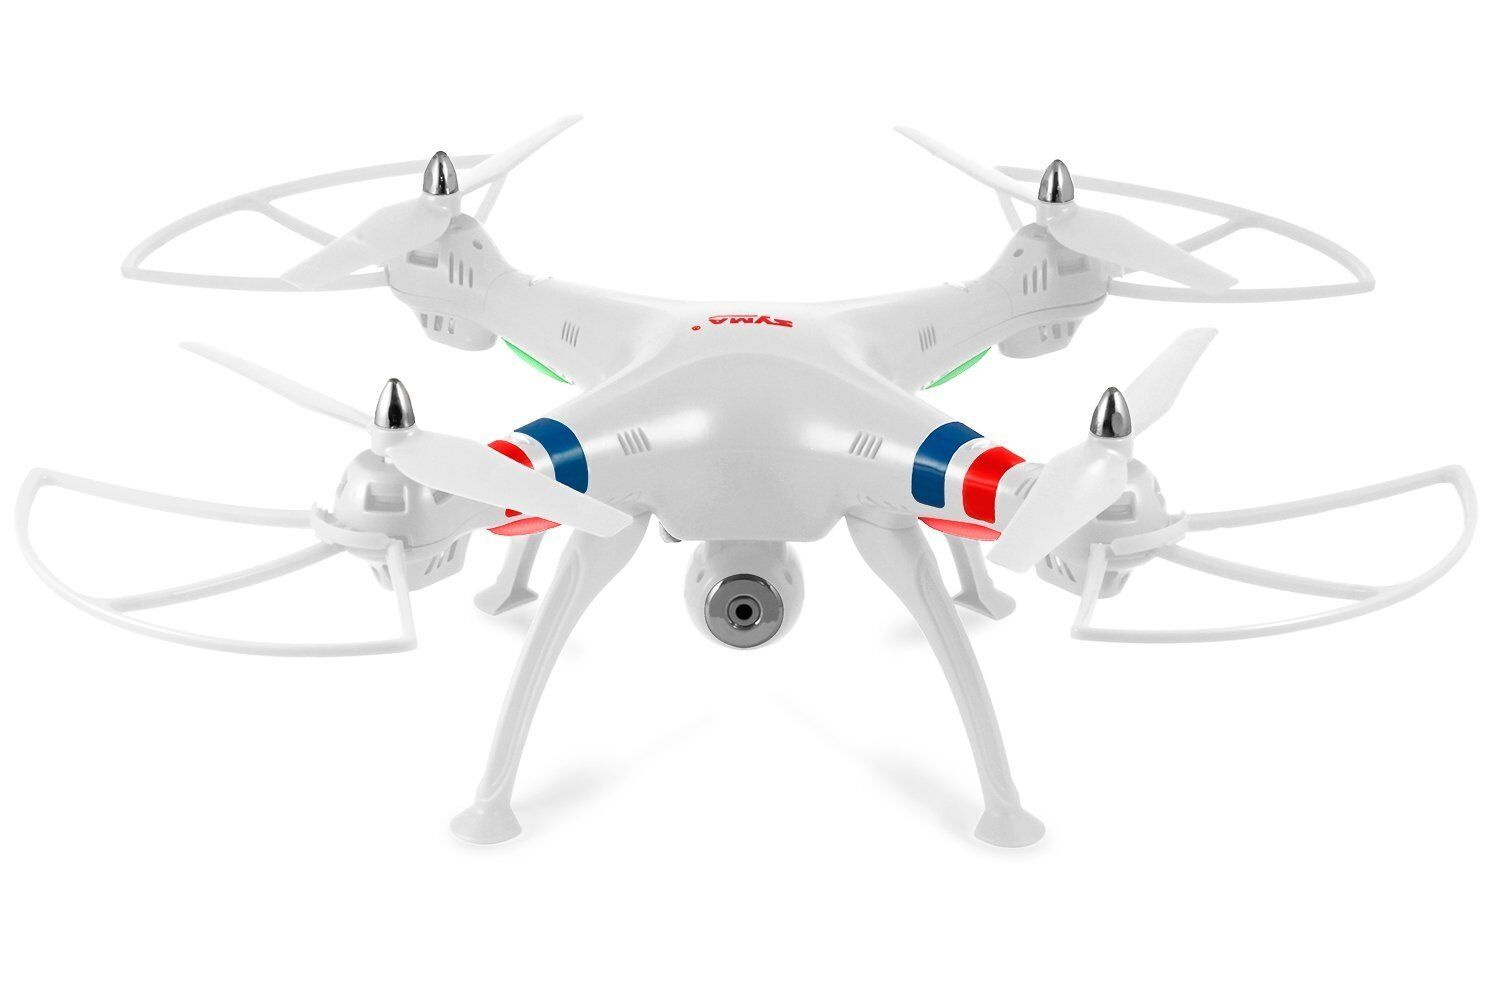 Syma X8C bianca 4 Channel RC Helicopter Drone with  teletelecamera 2.4 Ghz Quadcopter  a prezzi accessibili